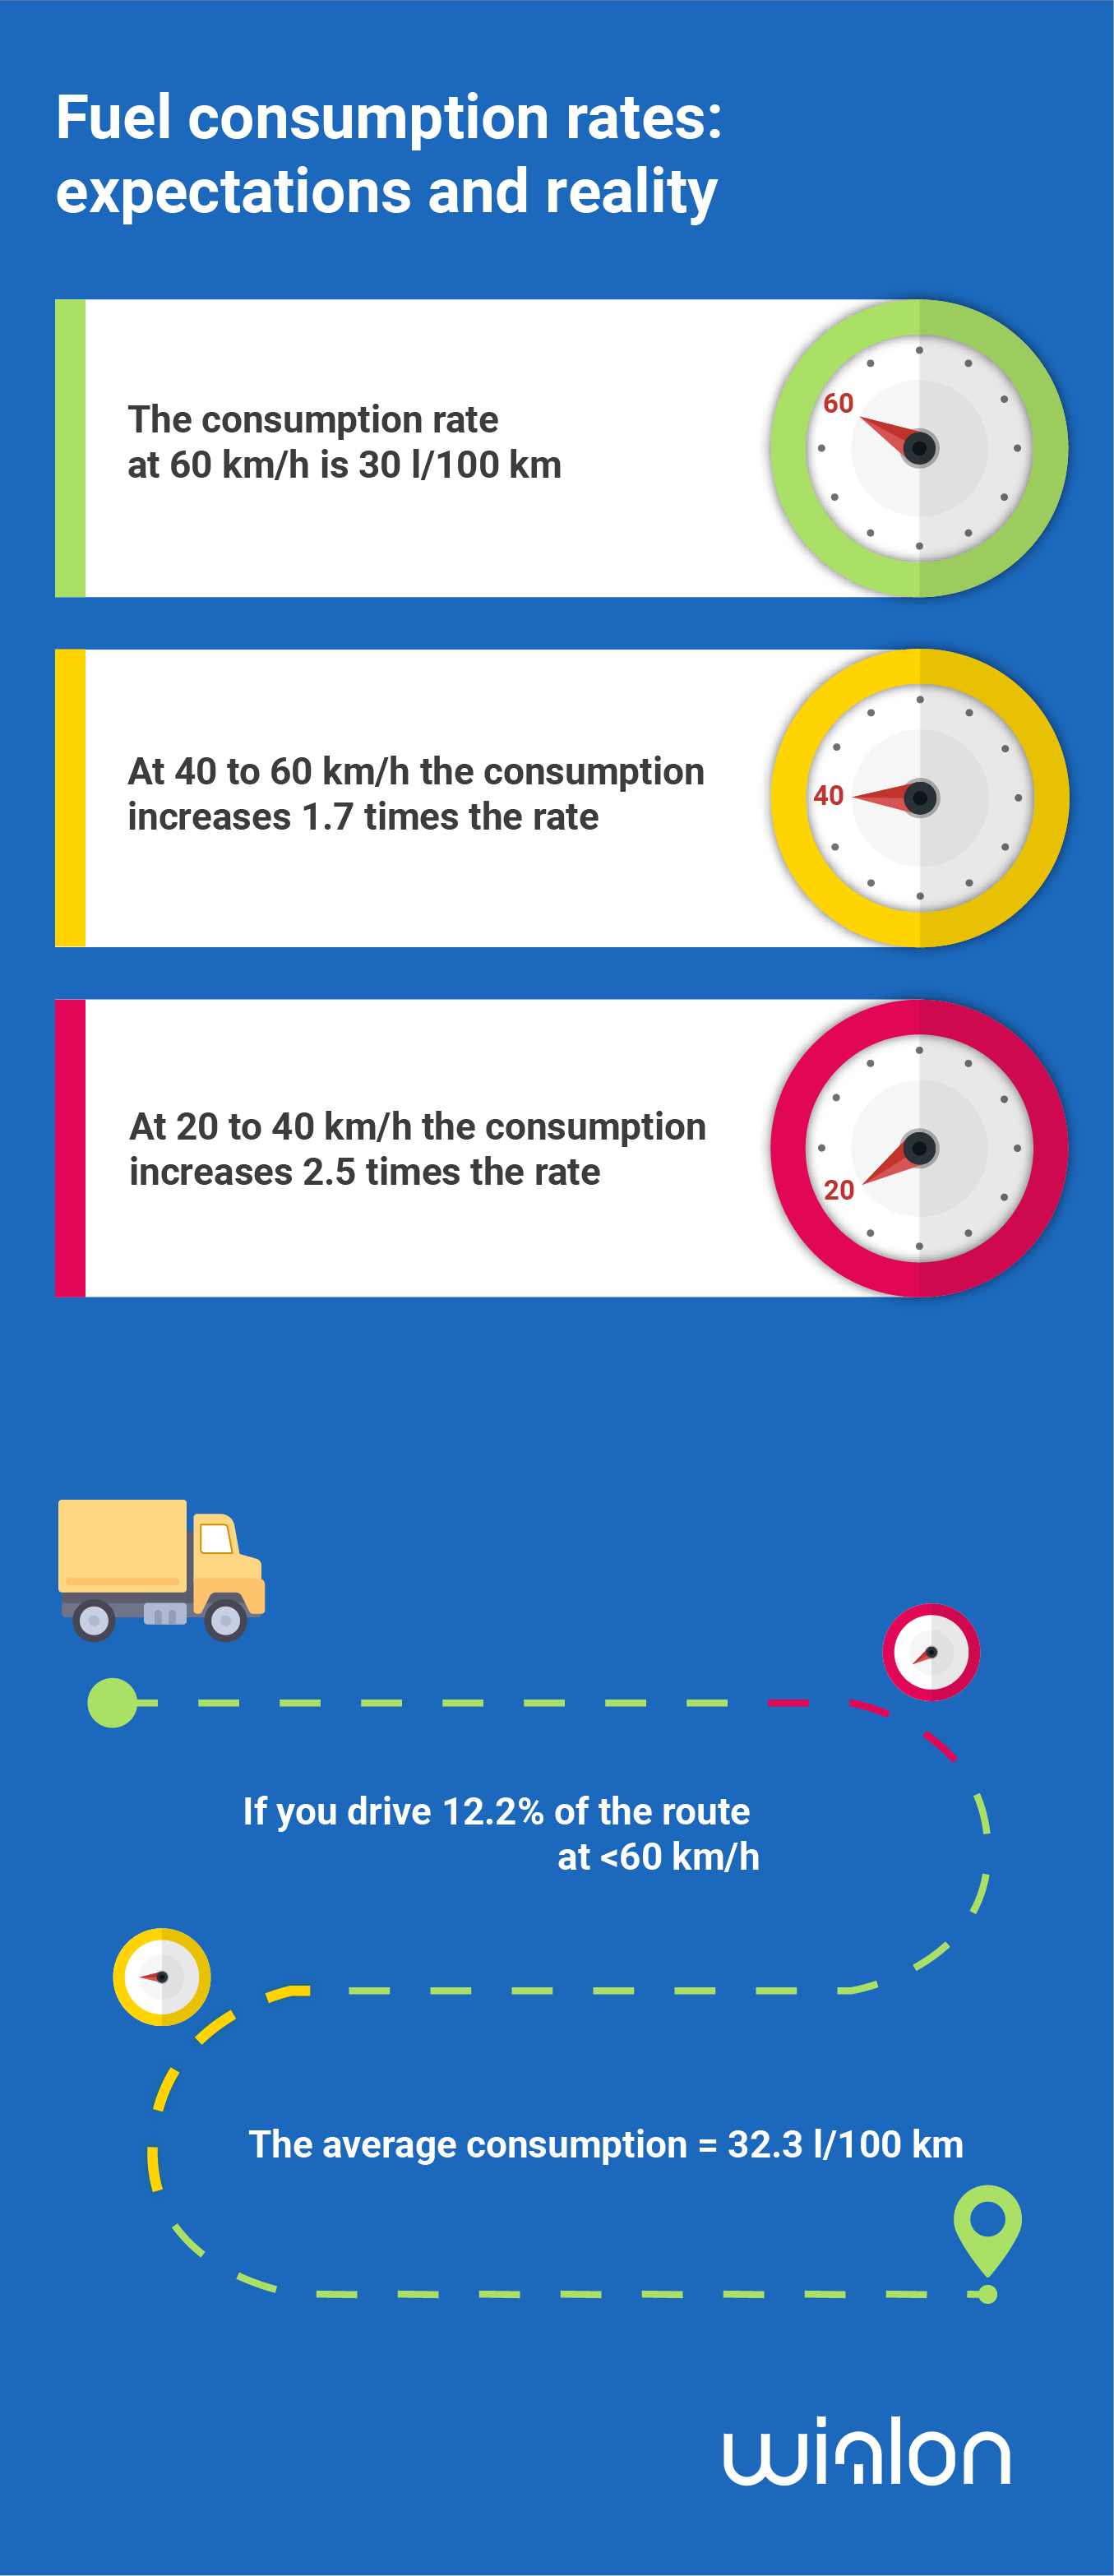 How to calculate fuel consumption per 100 km Calculation examples